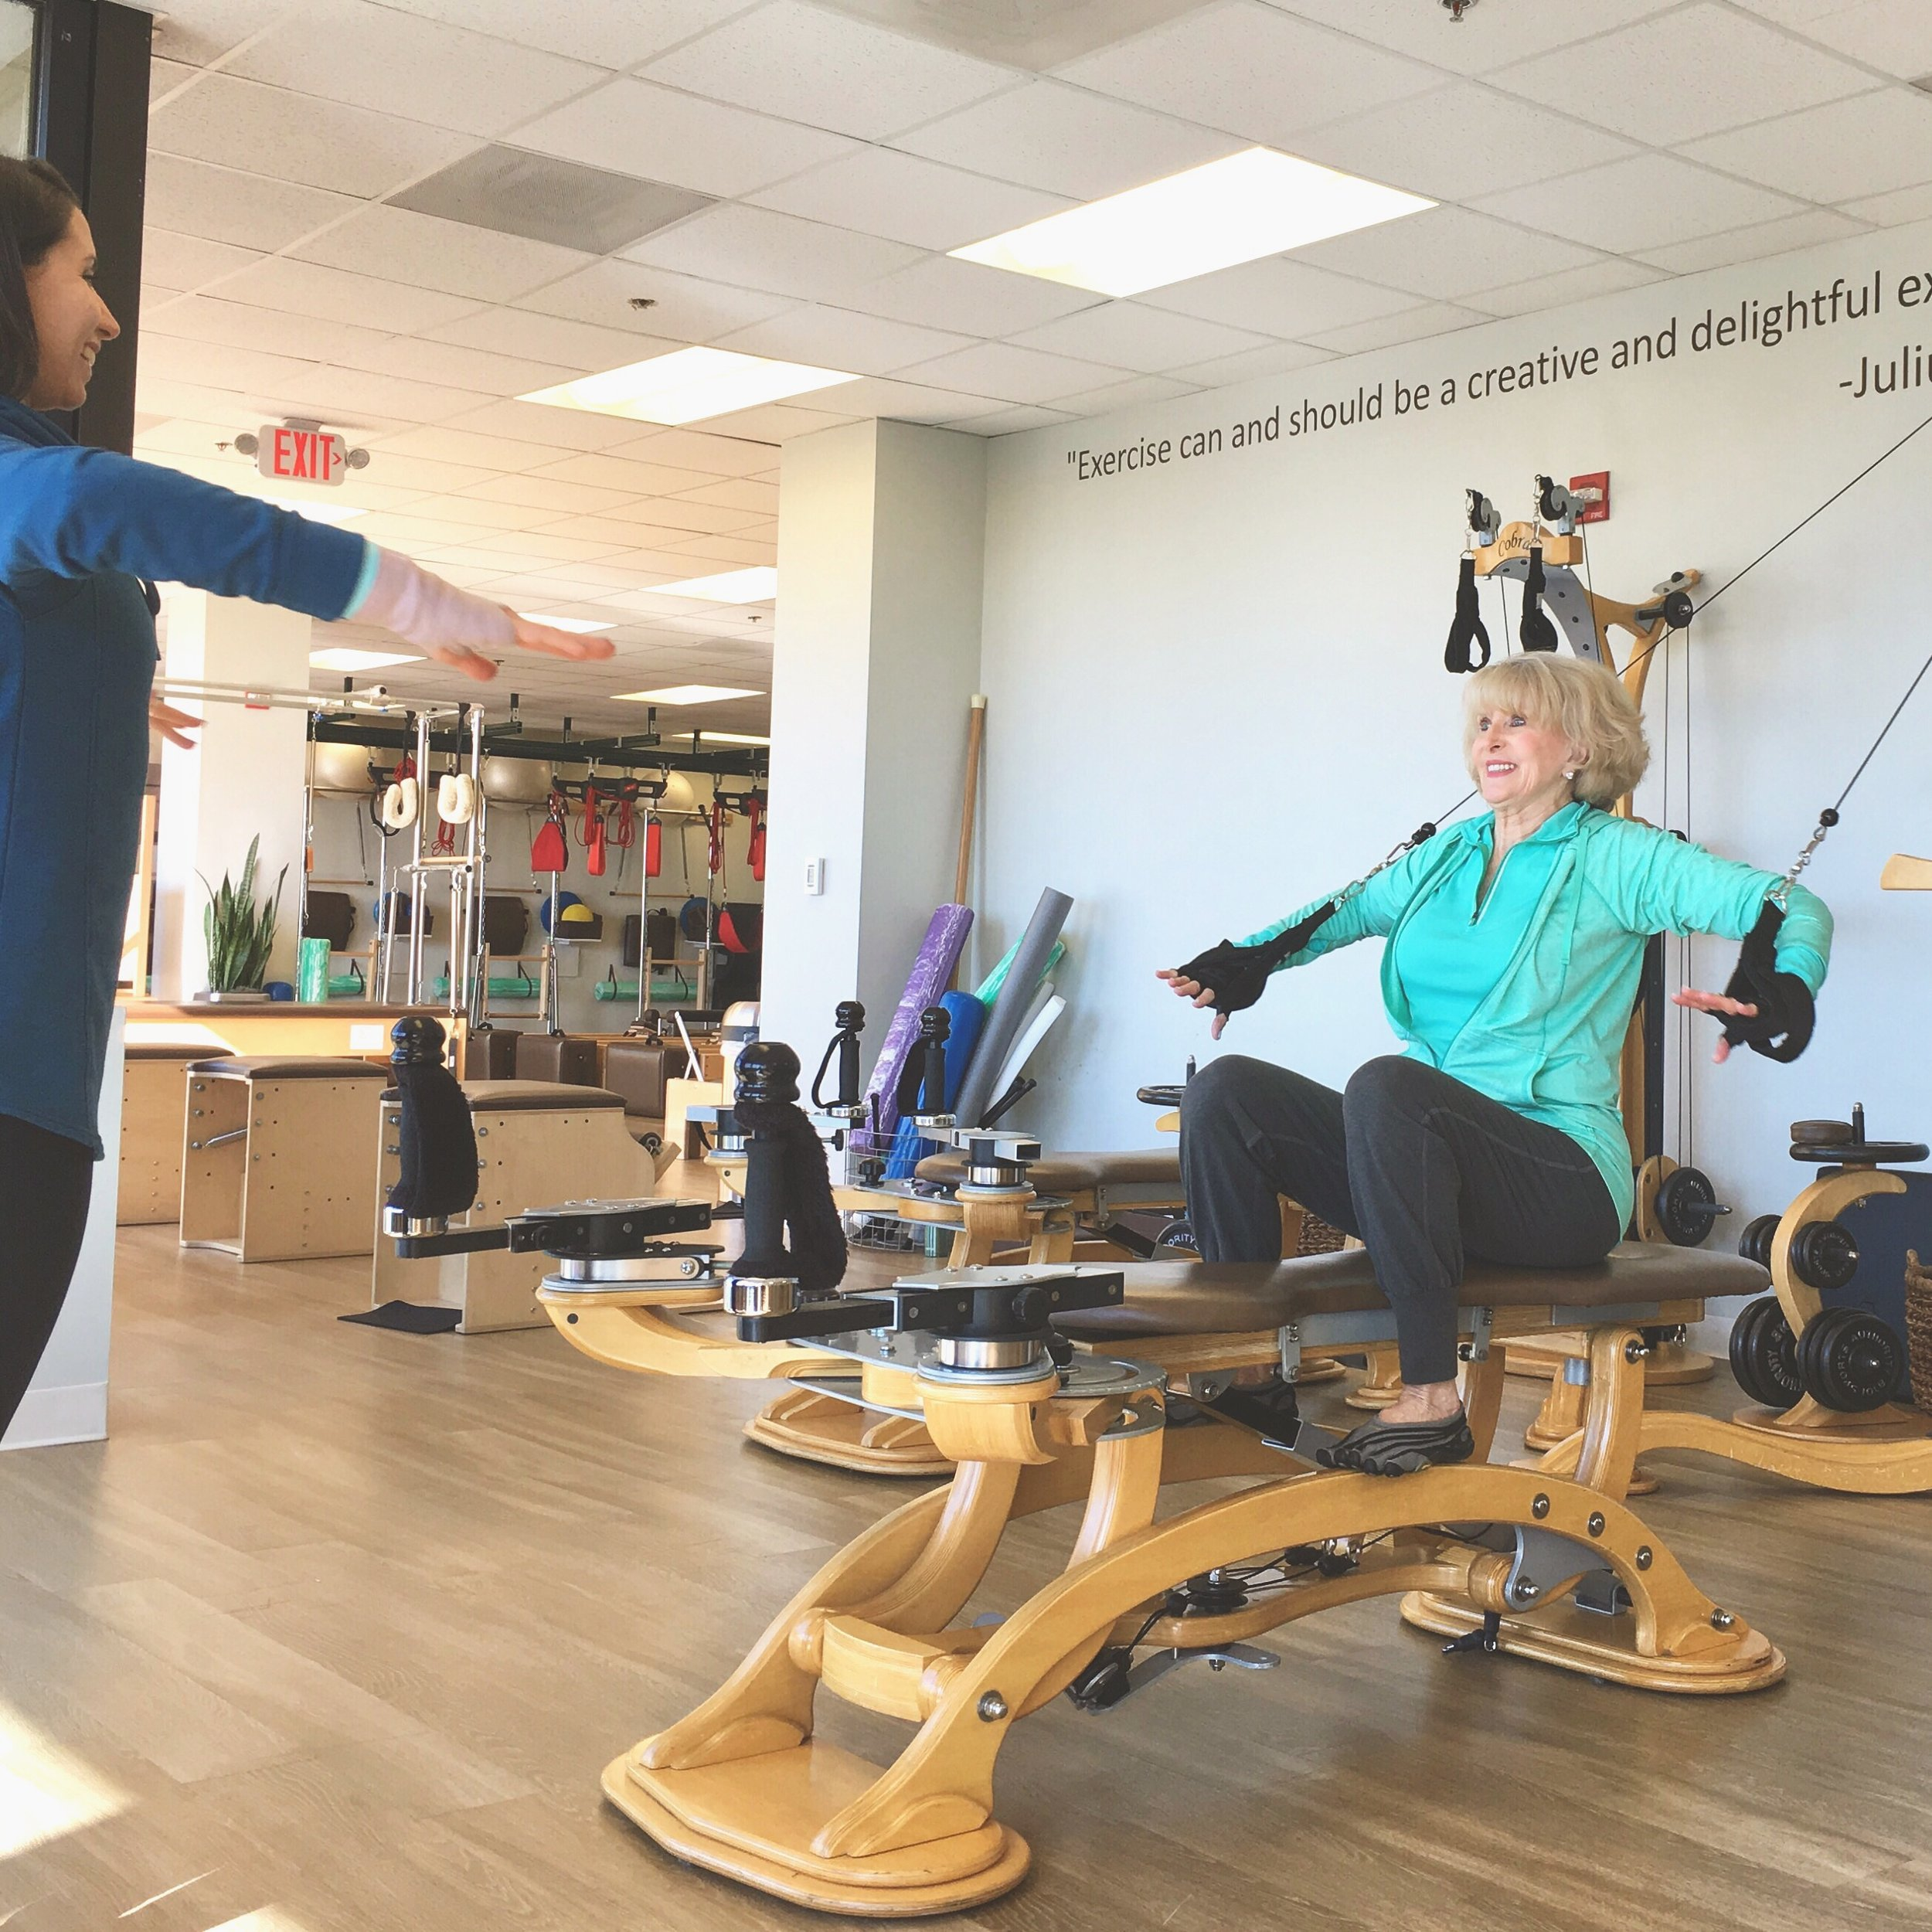 Gyrotonic Happy Client with Expert CORE Instructor